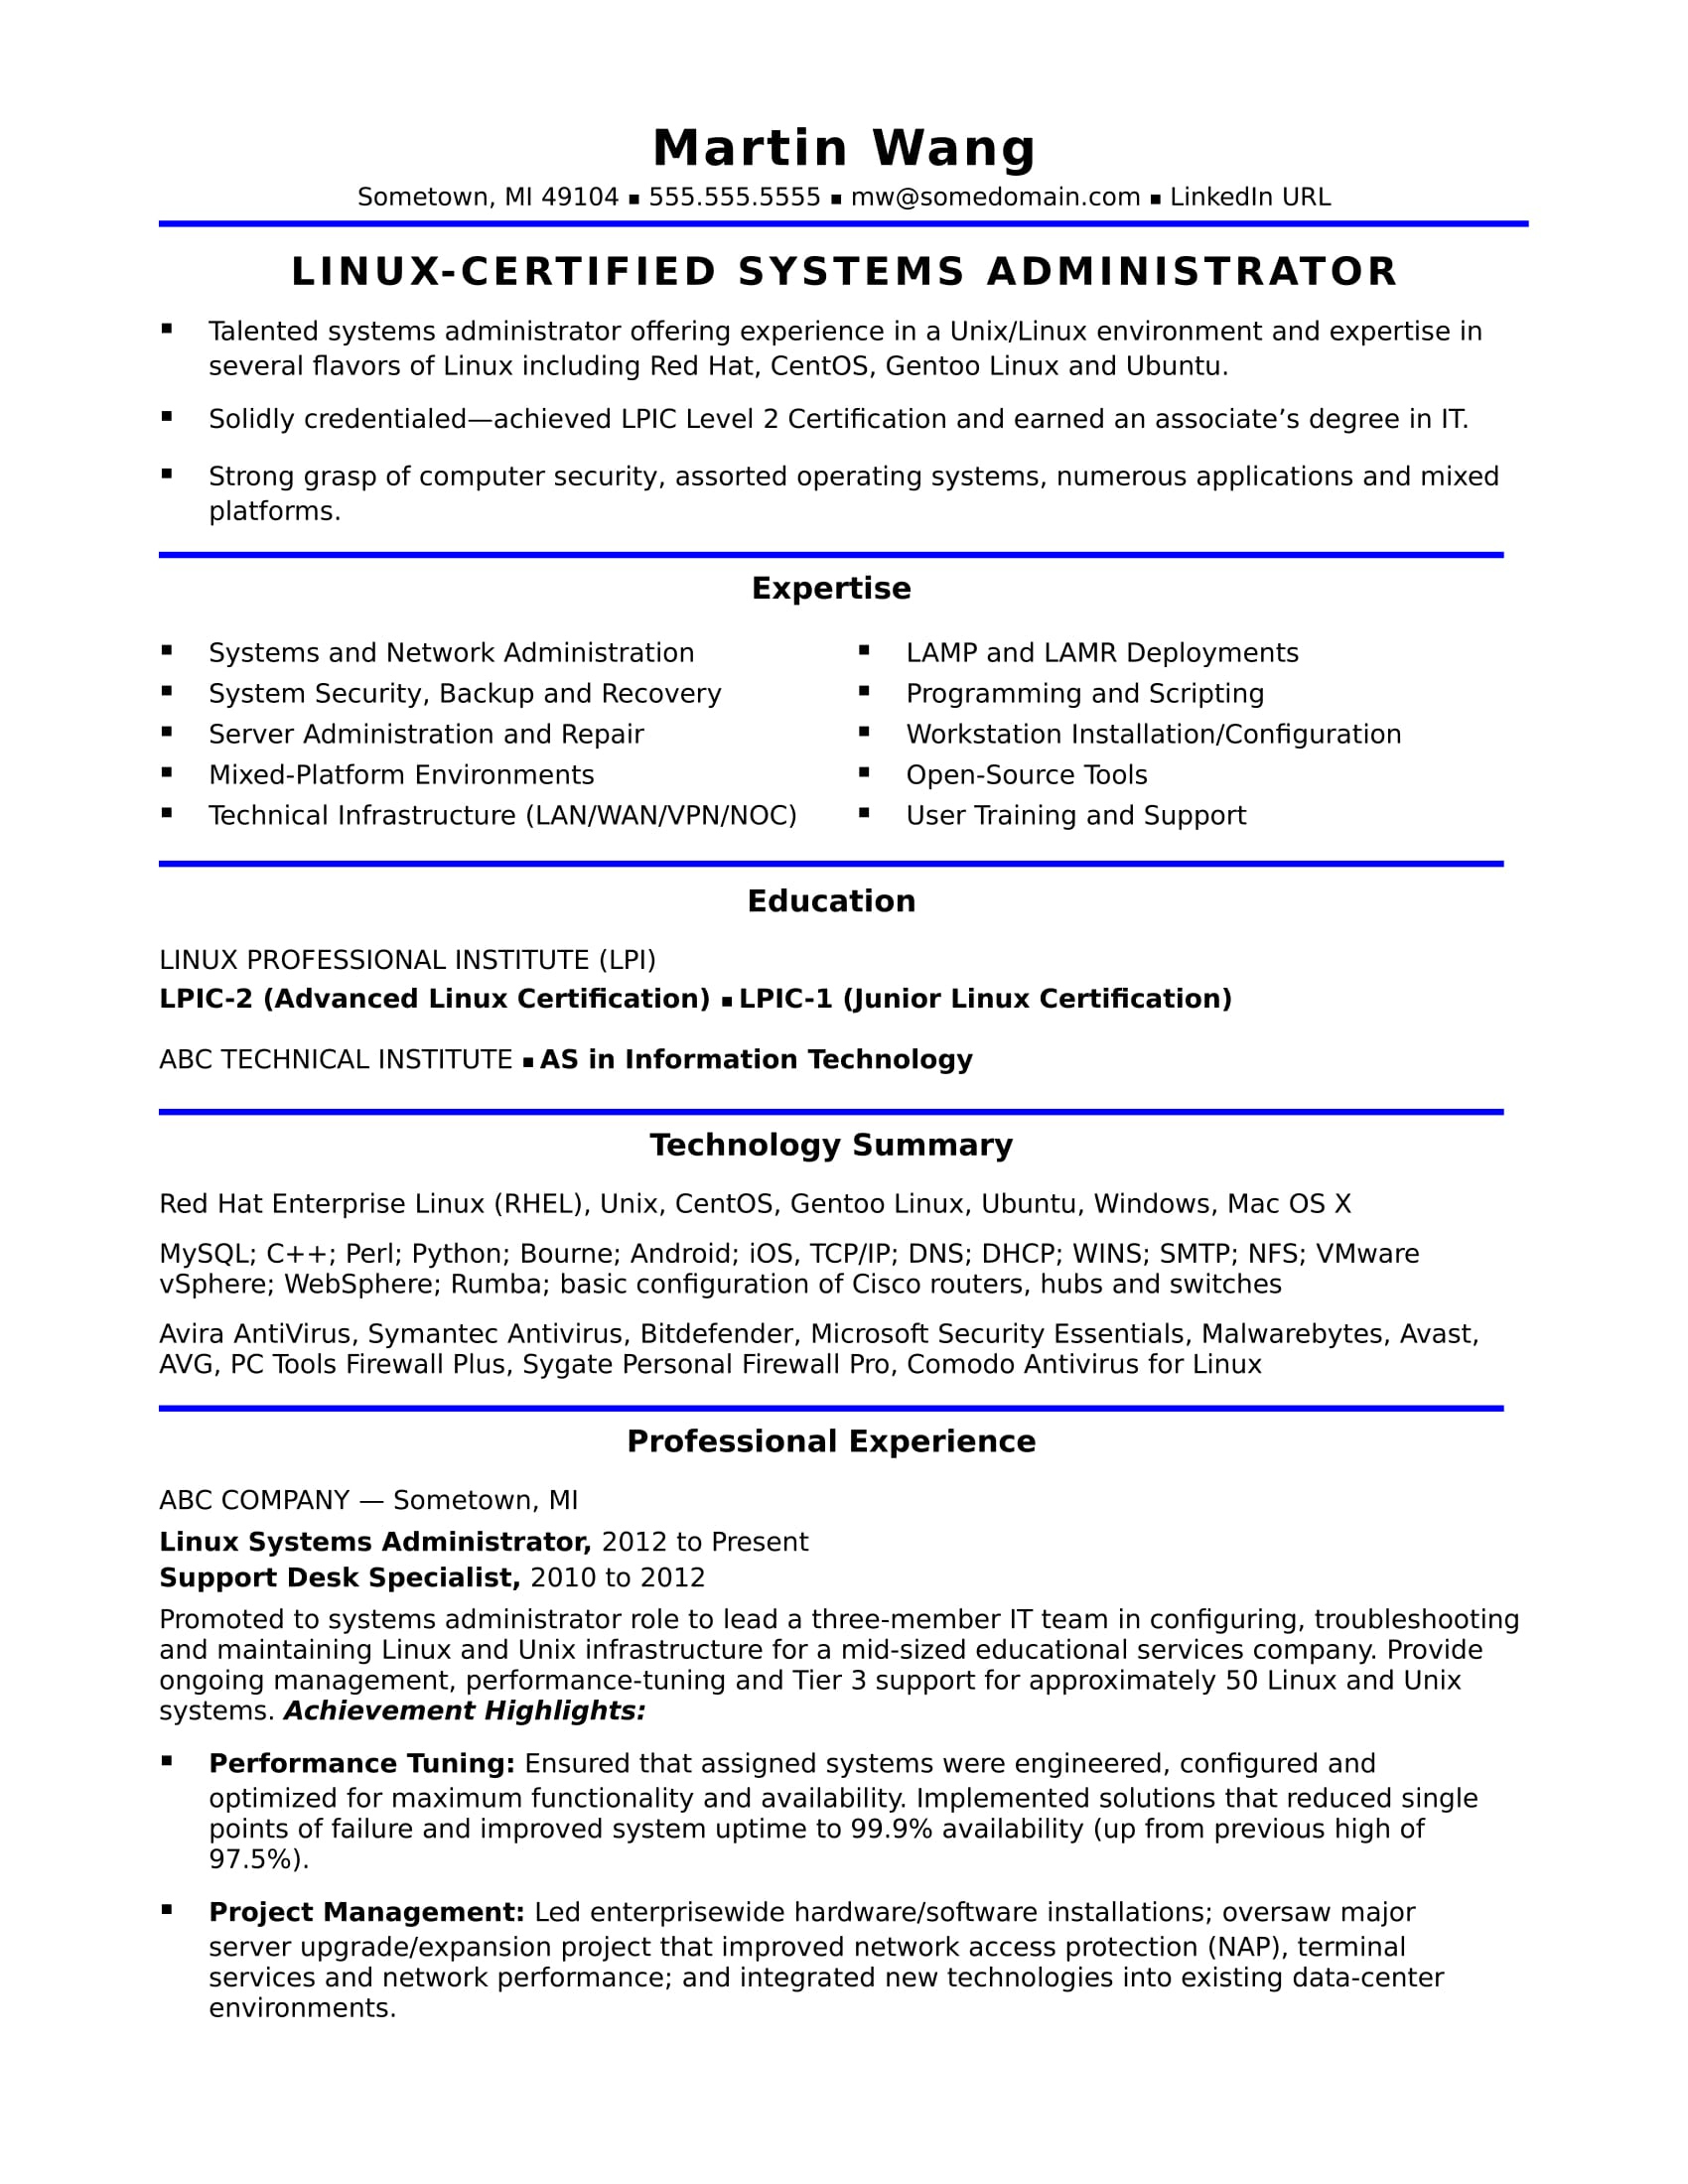 Sample Resume For A Midlevel Systems Administrator Monster Com